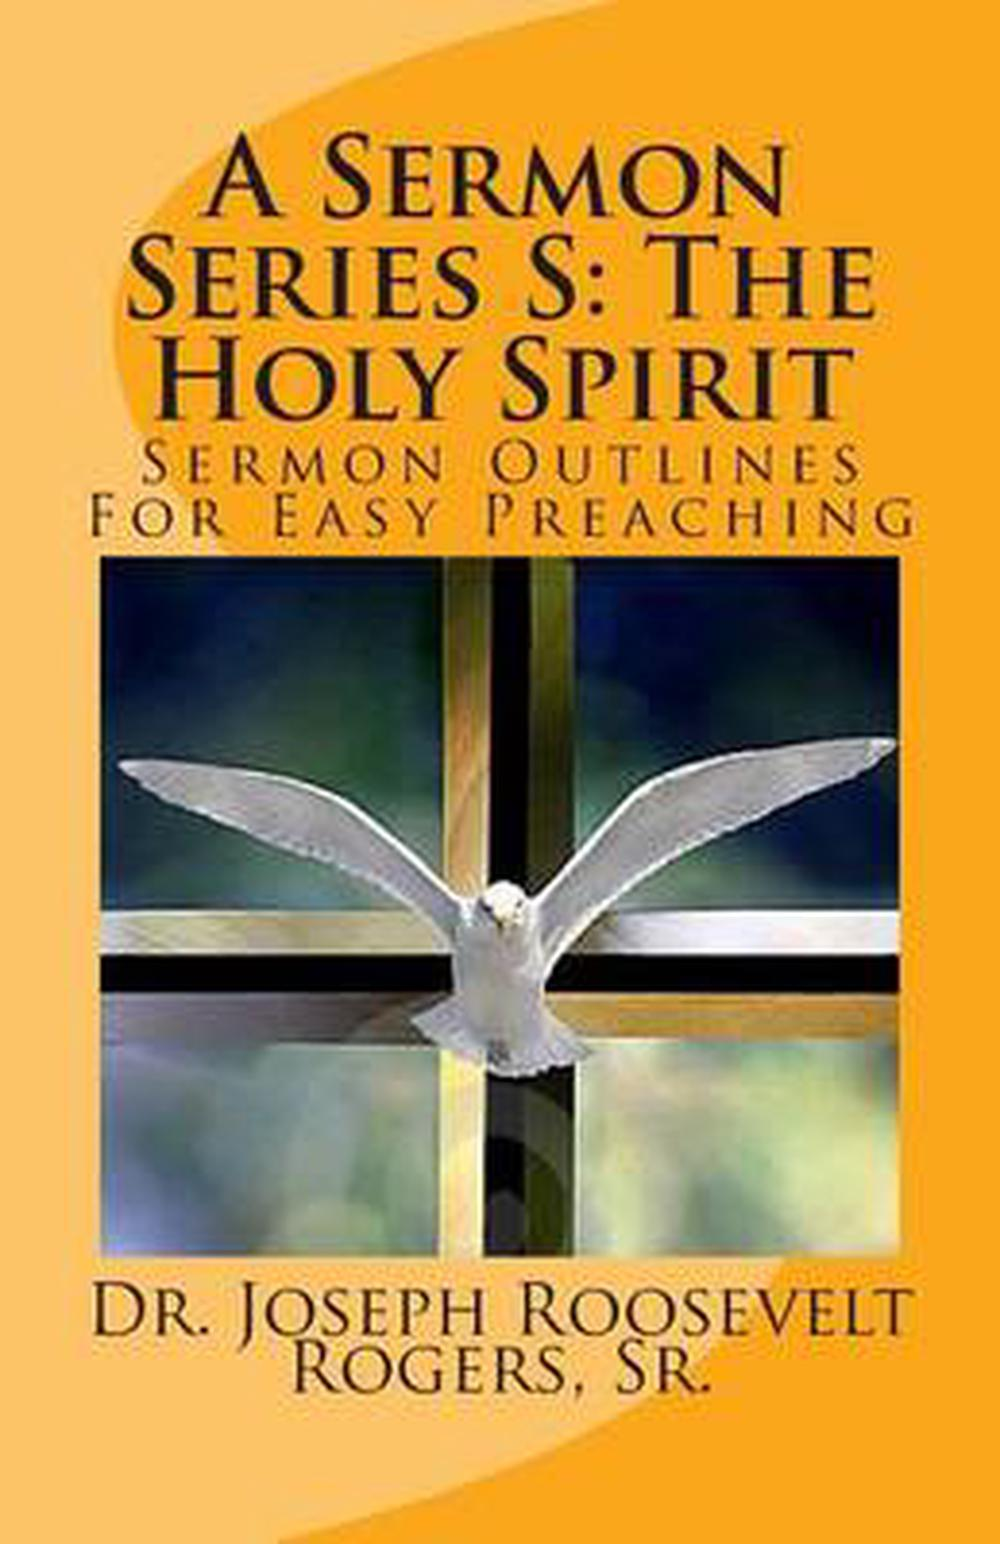 Details about A Sermon Series S: The Holy Spirit: Sermon Outlines for Easy  Preaching by Sr  Dr